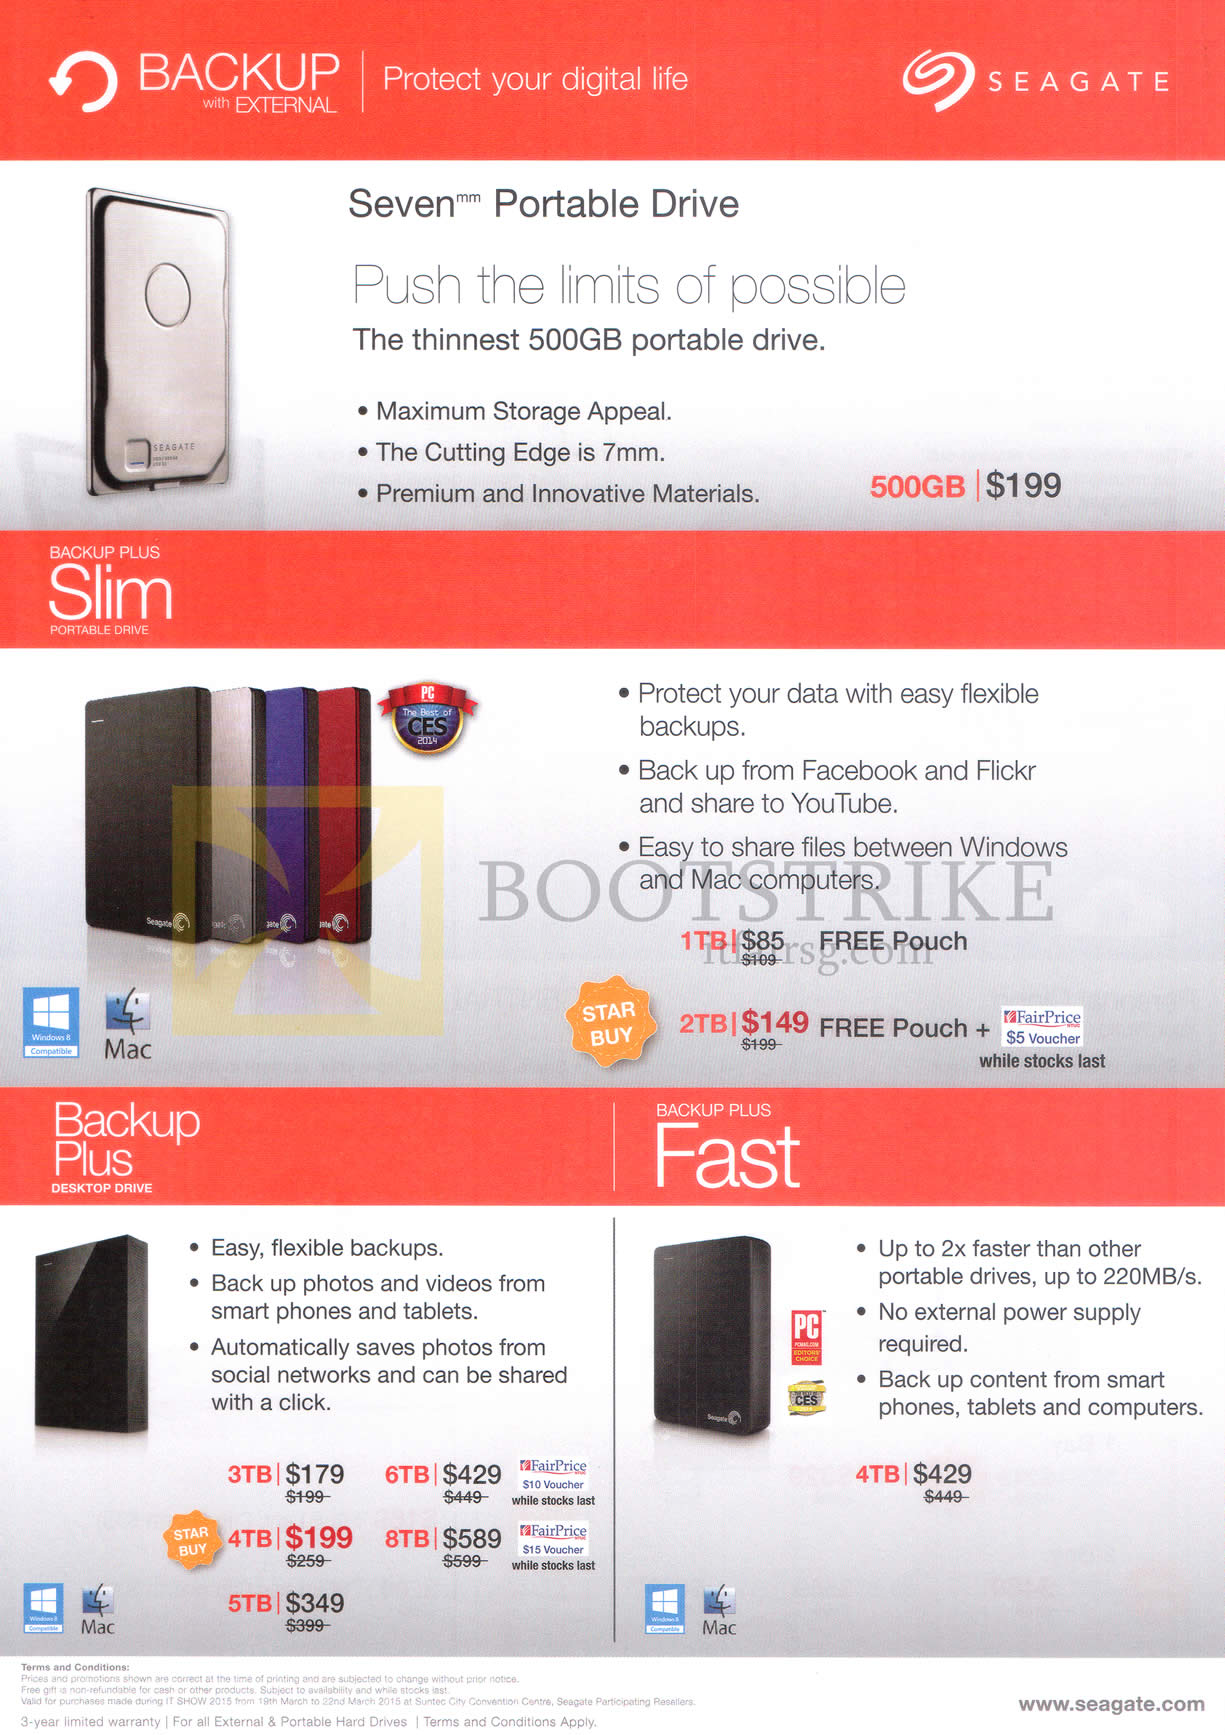 IT SHOW 2015 price list image brochure of Seagate Portable External Storage Disk Drives Backup Plus Slim, Desktop Drive, 500GB 1TB 2TB 3TB 4TB 5TB 6TB 8TB